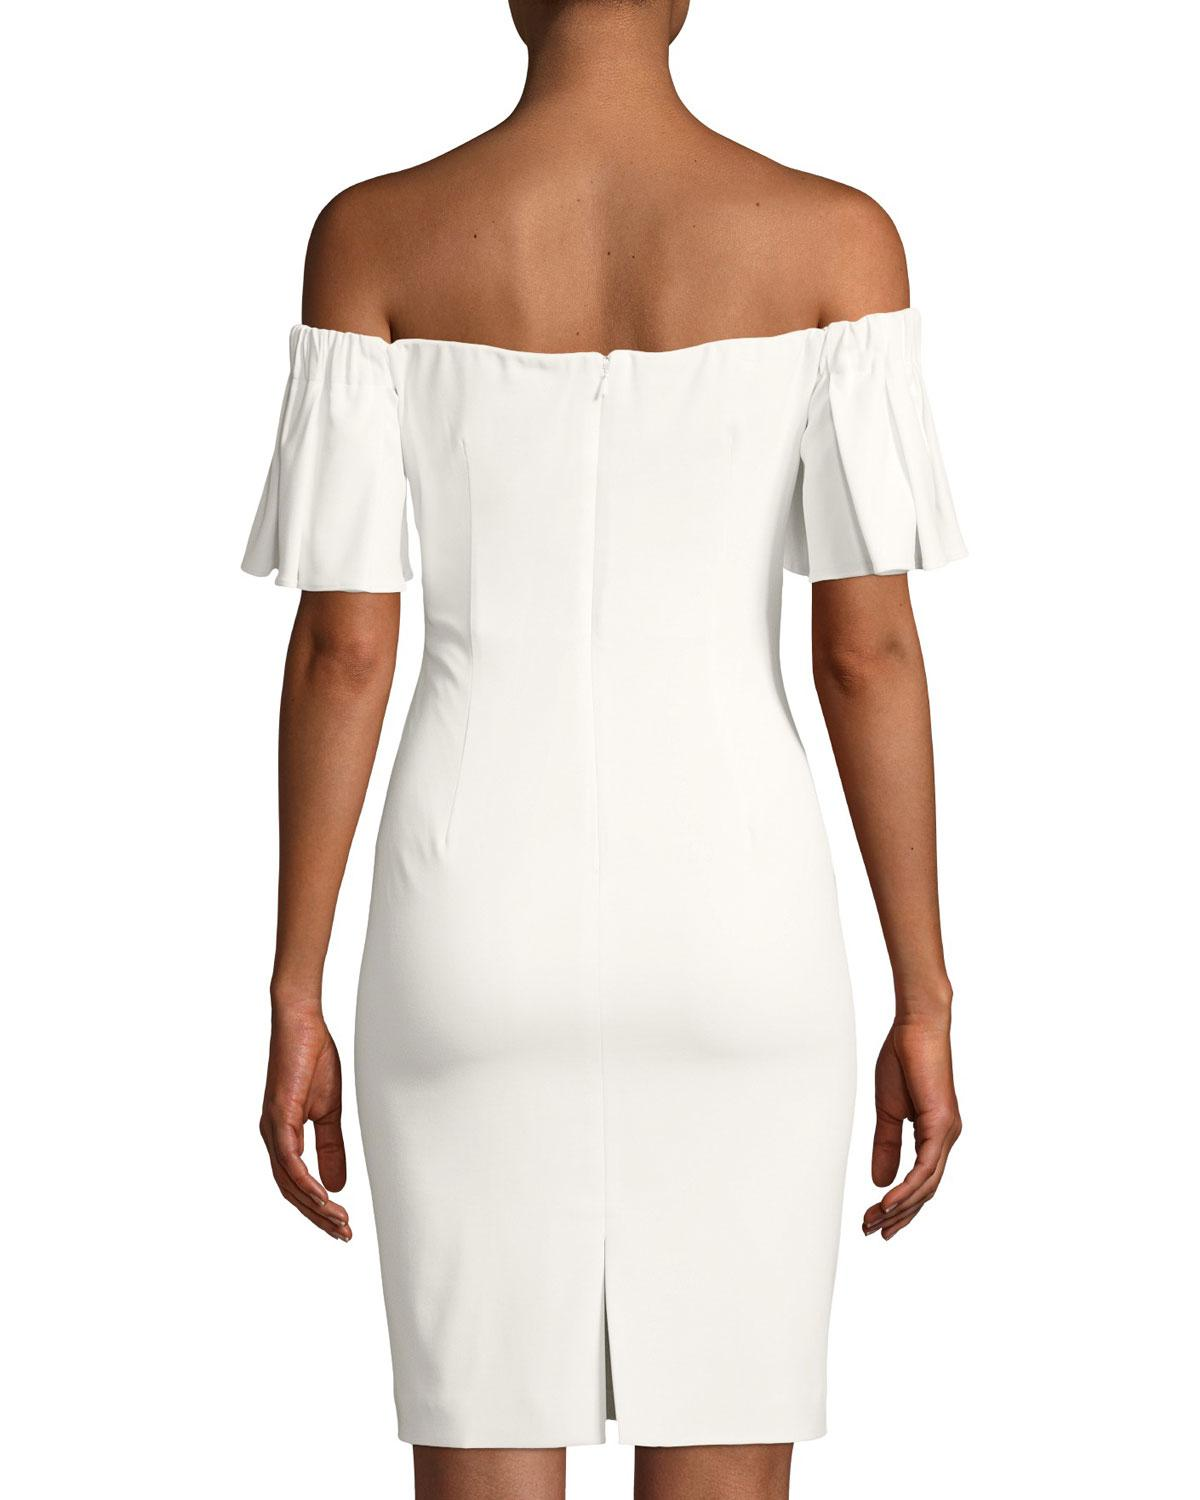 5af748ae Gallery. Previously sold at: Last Call · Women's Off The Shoulder Dresses